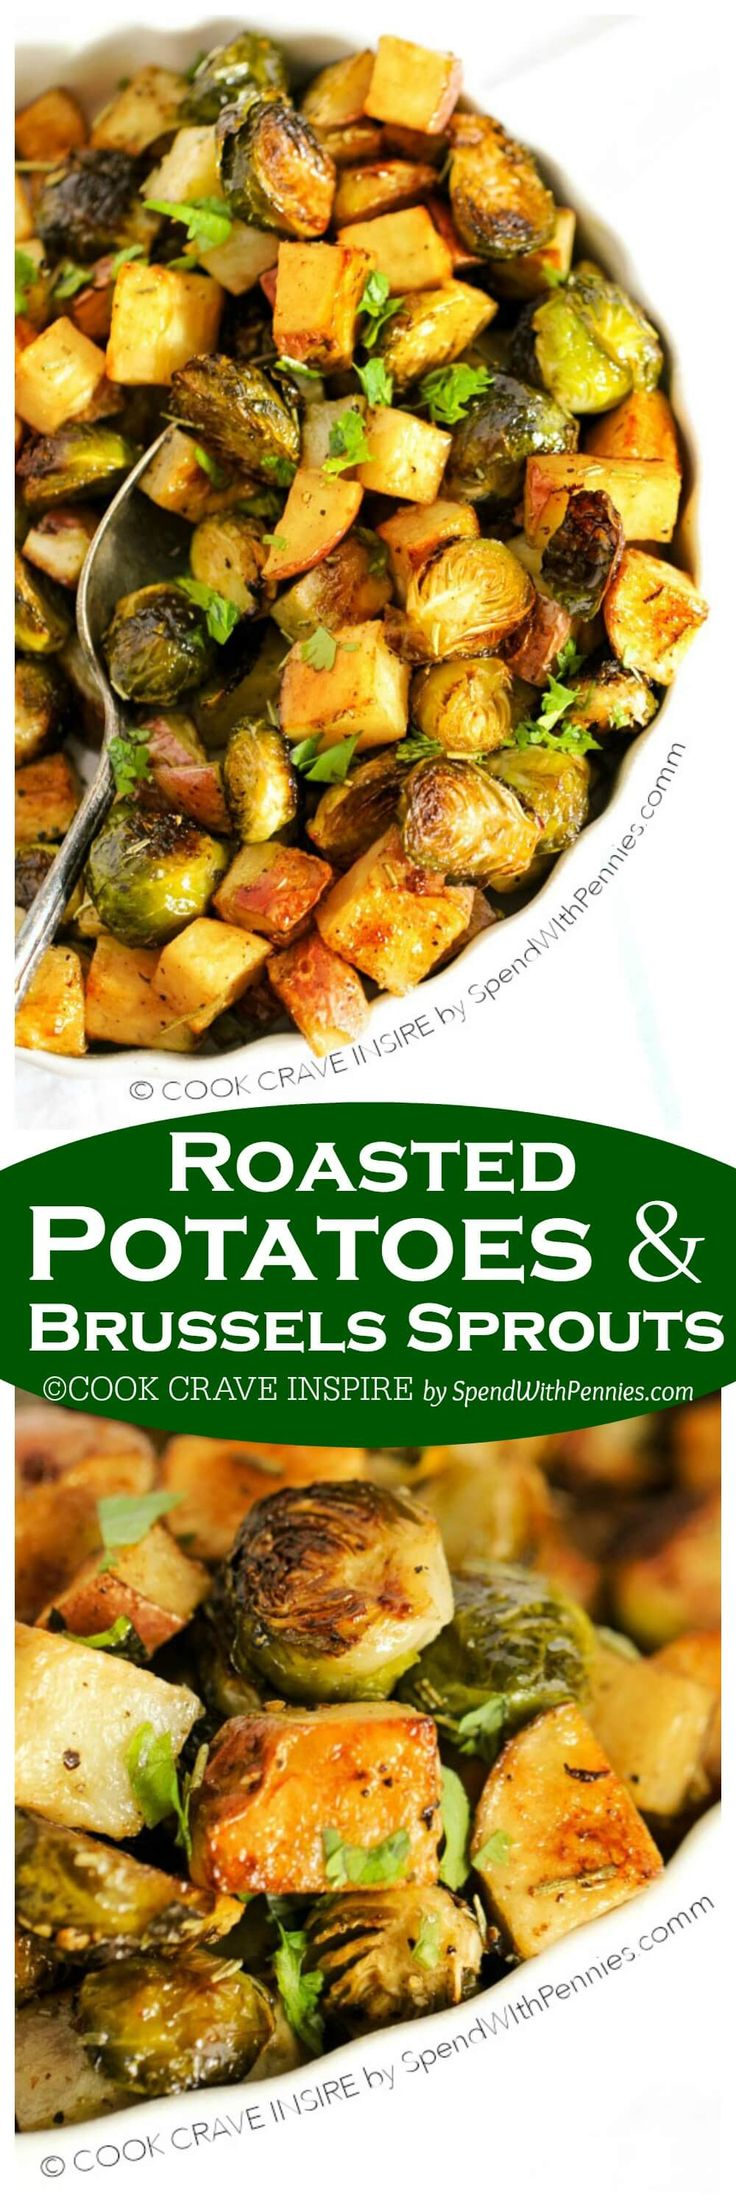 Roasted potatoes and brussels sprouts are easy to make & the perfect side dish idea. These contain rosemary & garlic powder but you can use you favorite seasonings!